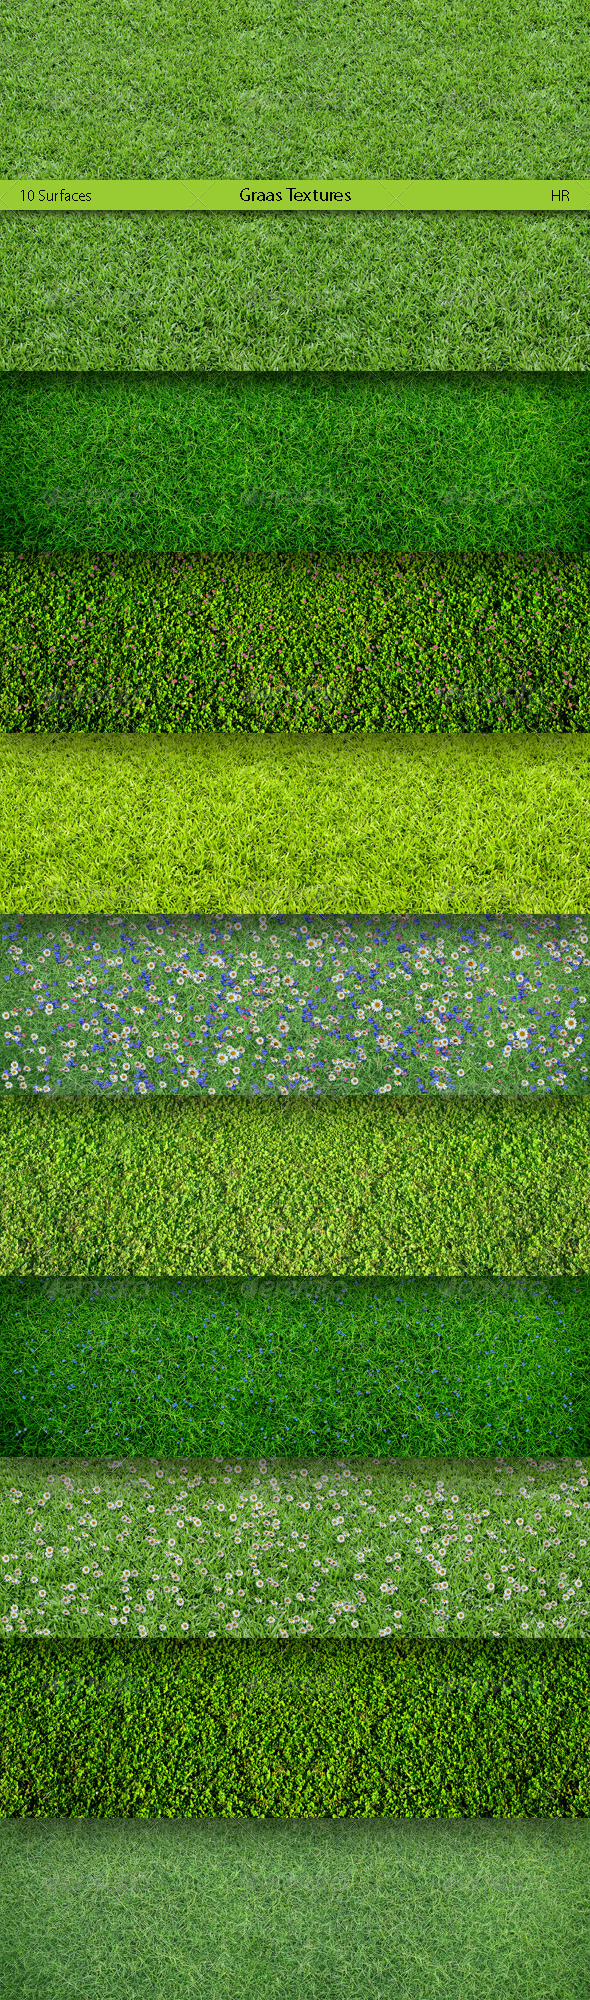 Grass Surfaces Texture Backgrounds